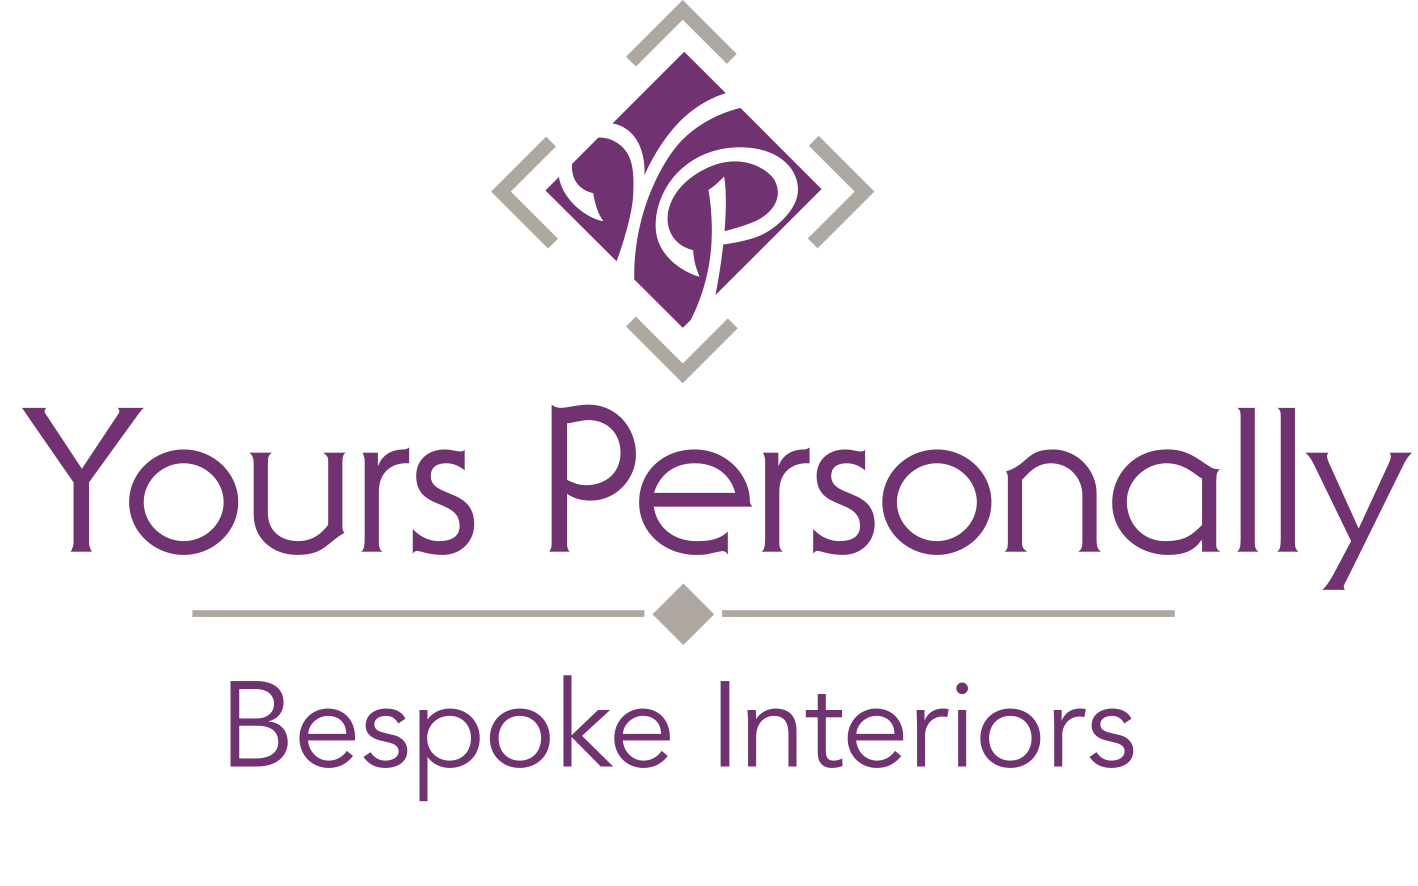 Yours Personally Bespoke Interiors